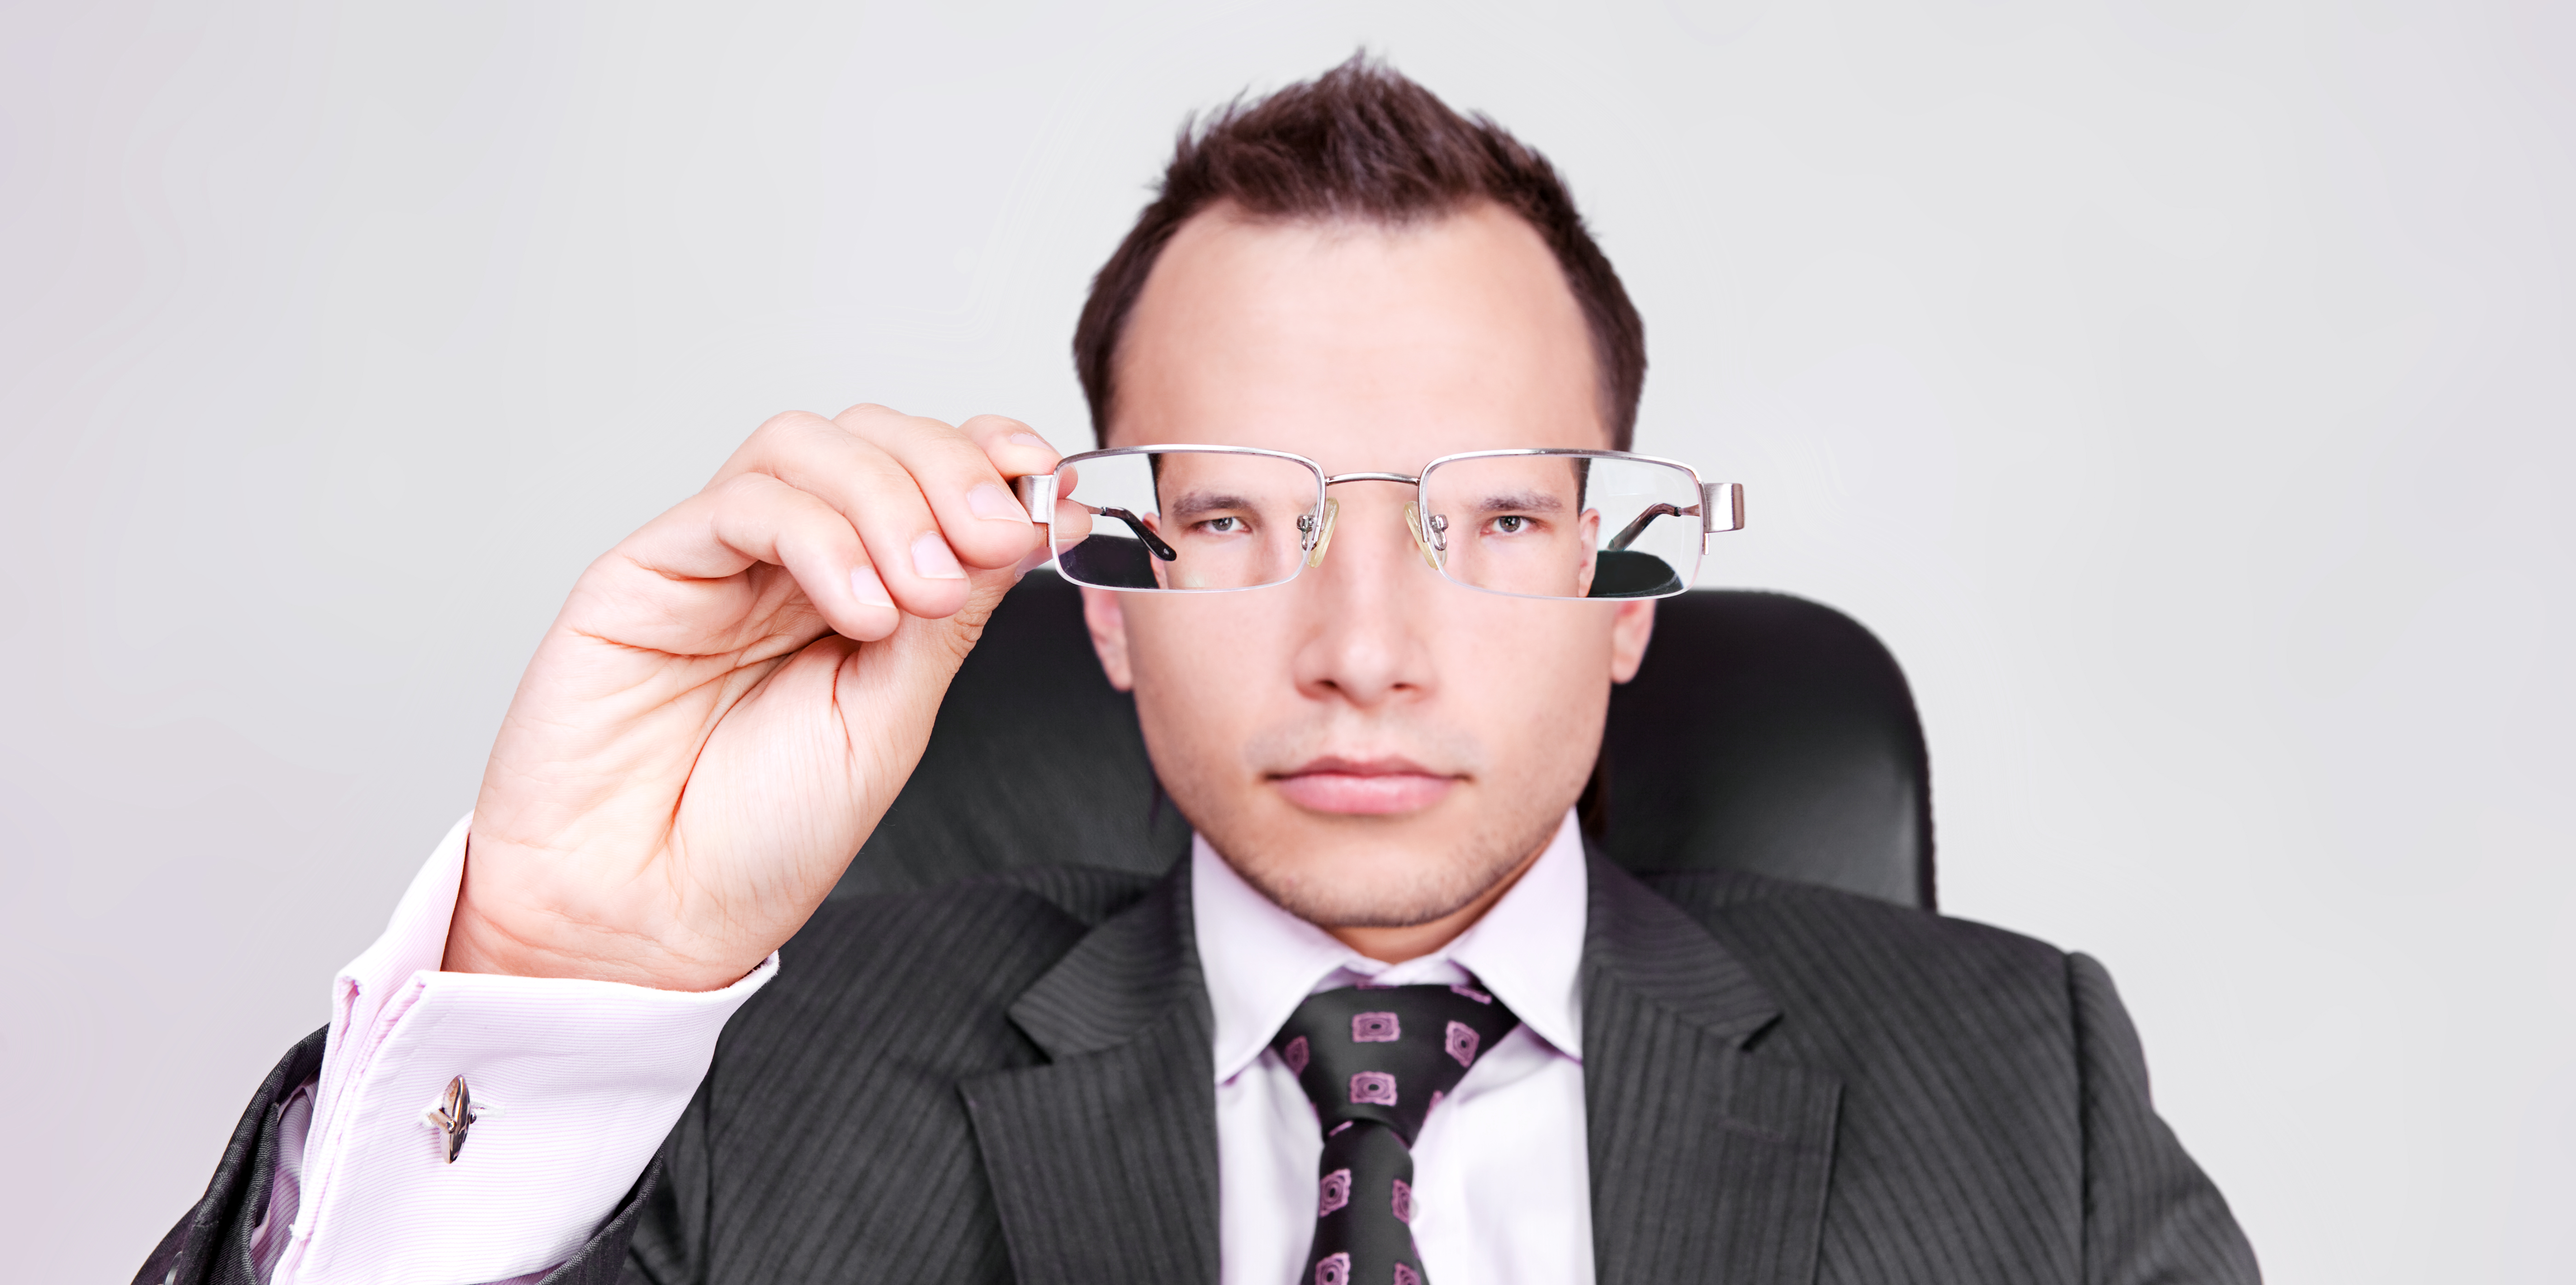 businessman looking, Adult, Occupation, Through, Suit, HQ Photo